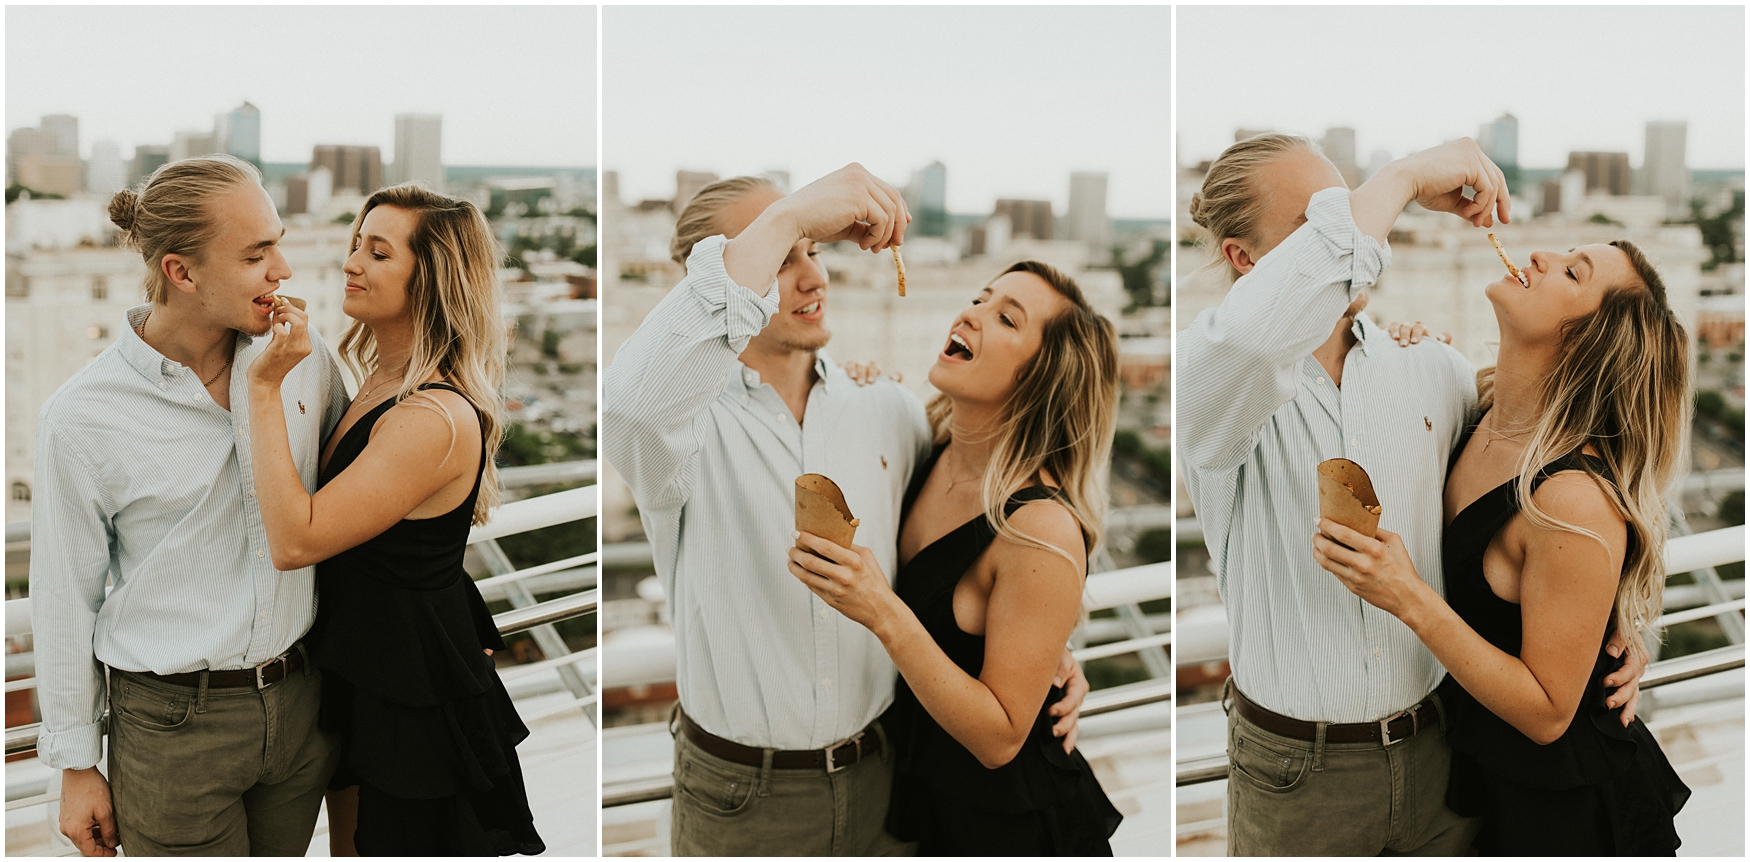 Hannah_Baldwin_Photography_RoofTop_Richmond_Virginia_Couples_Session_The_Graduate_RVA_0240.jpg